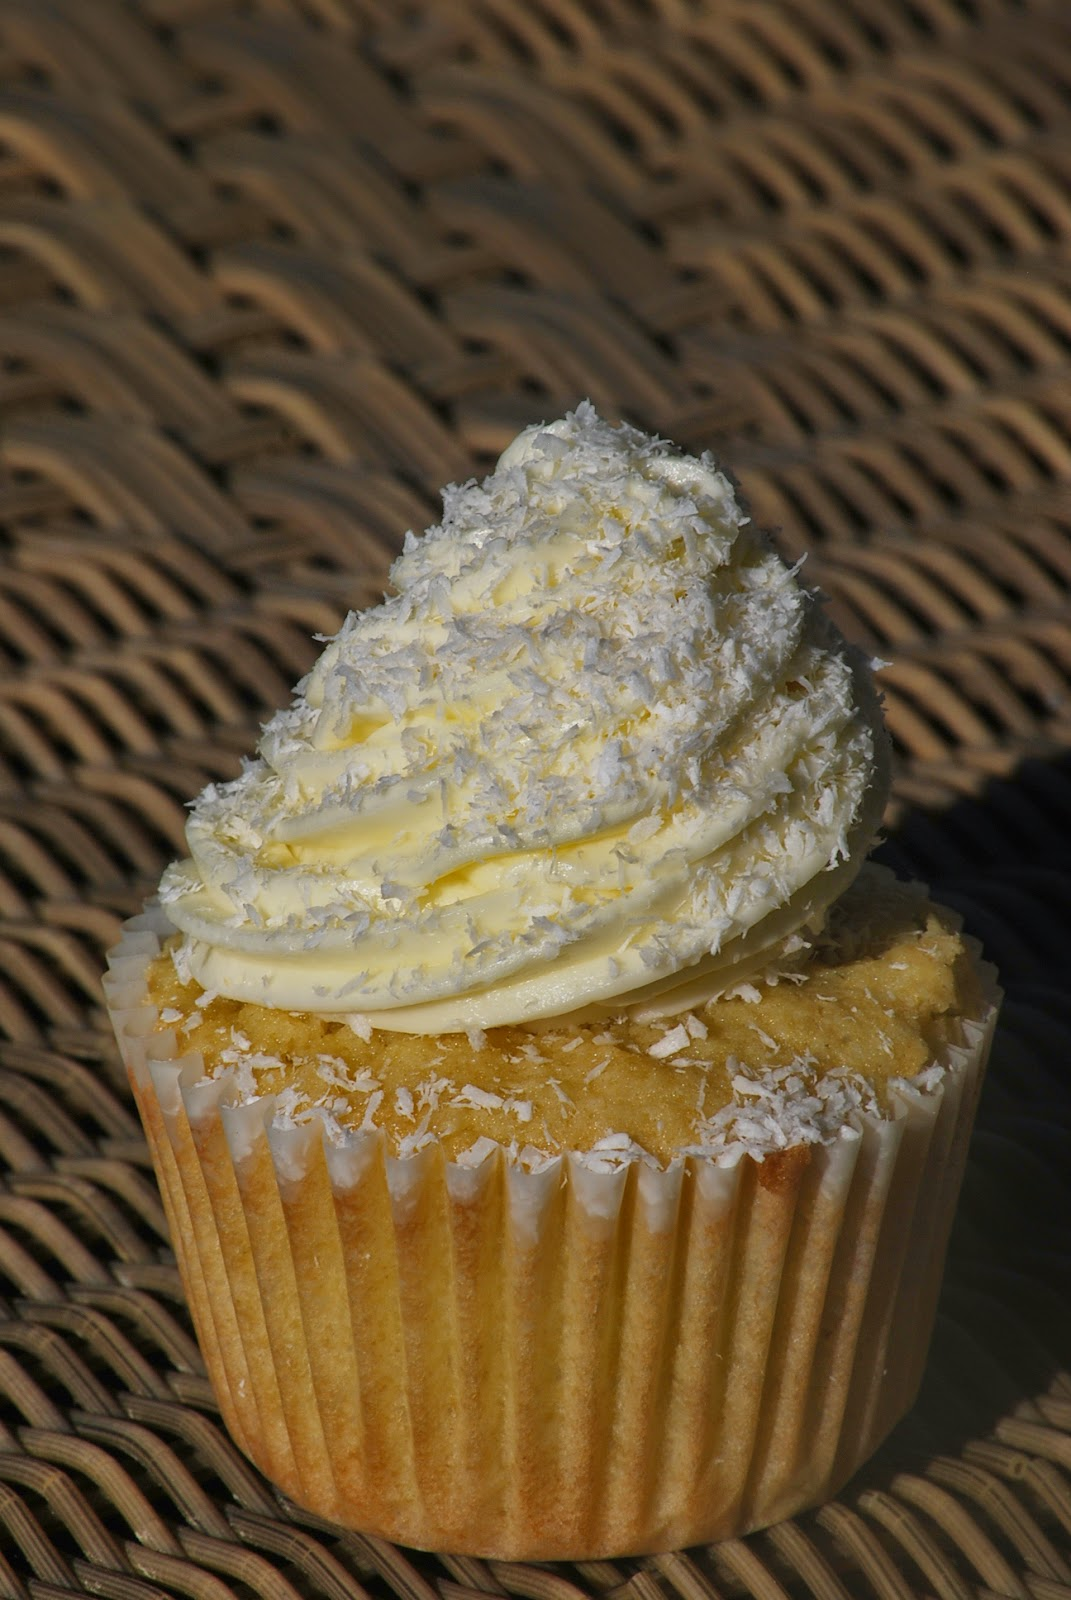 My story in recipes: Coconut Cupcakes